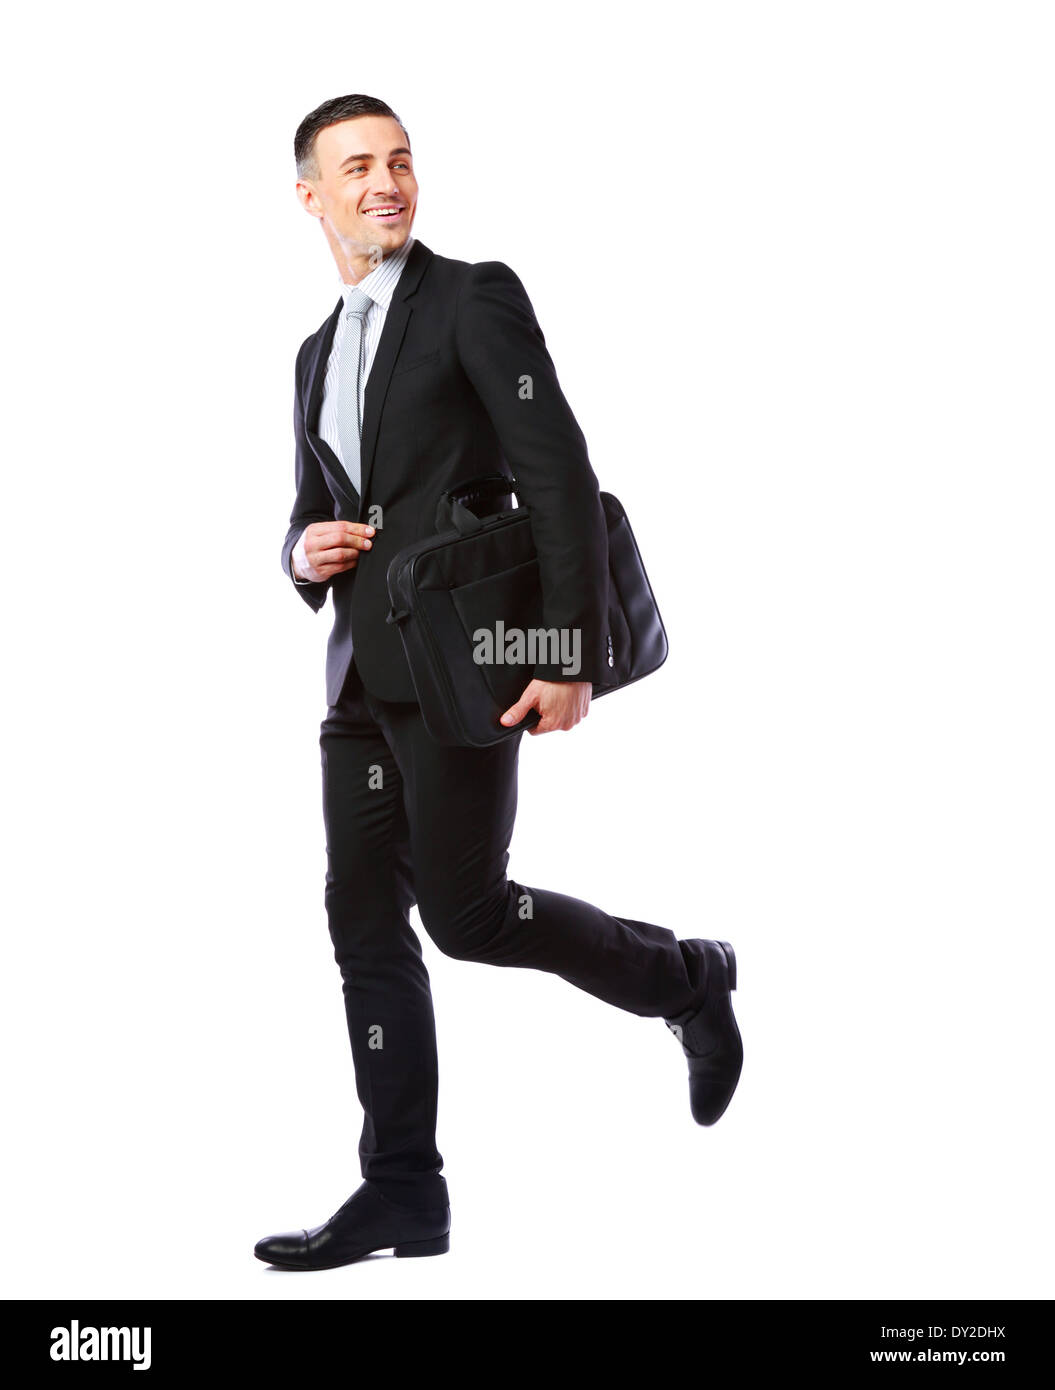 Businessman walking with laptop bag isolated on a white background - Stock Image